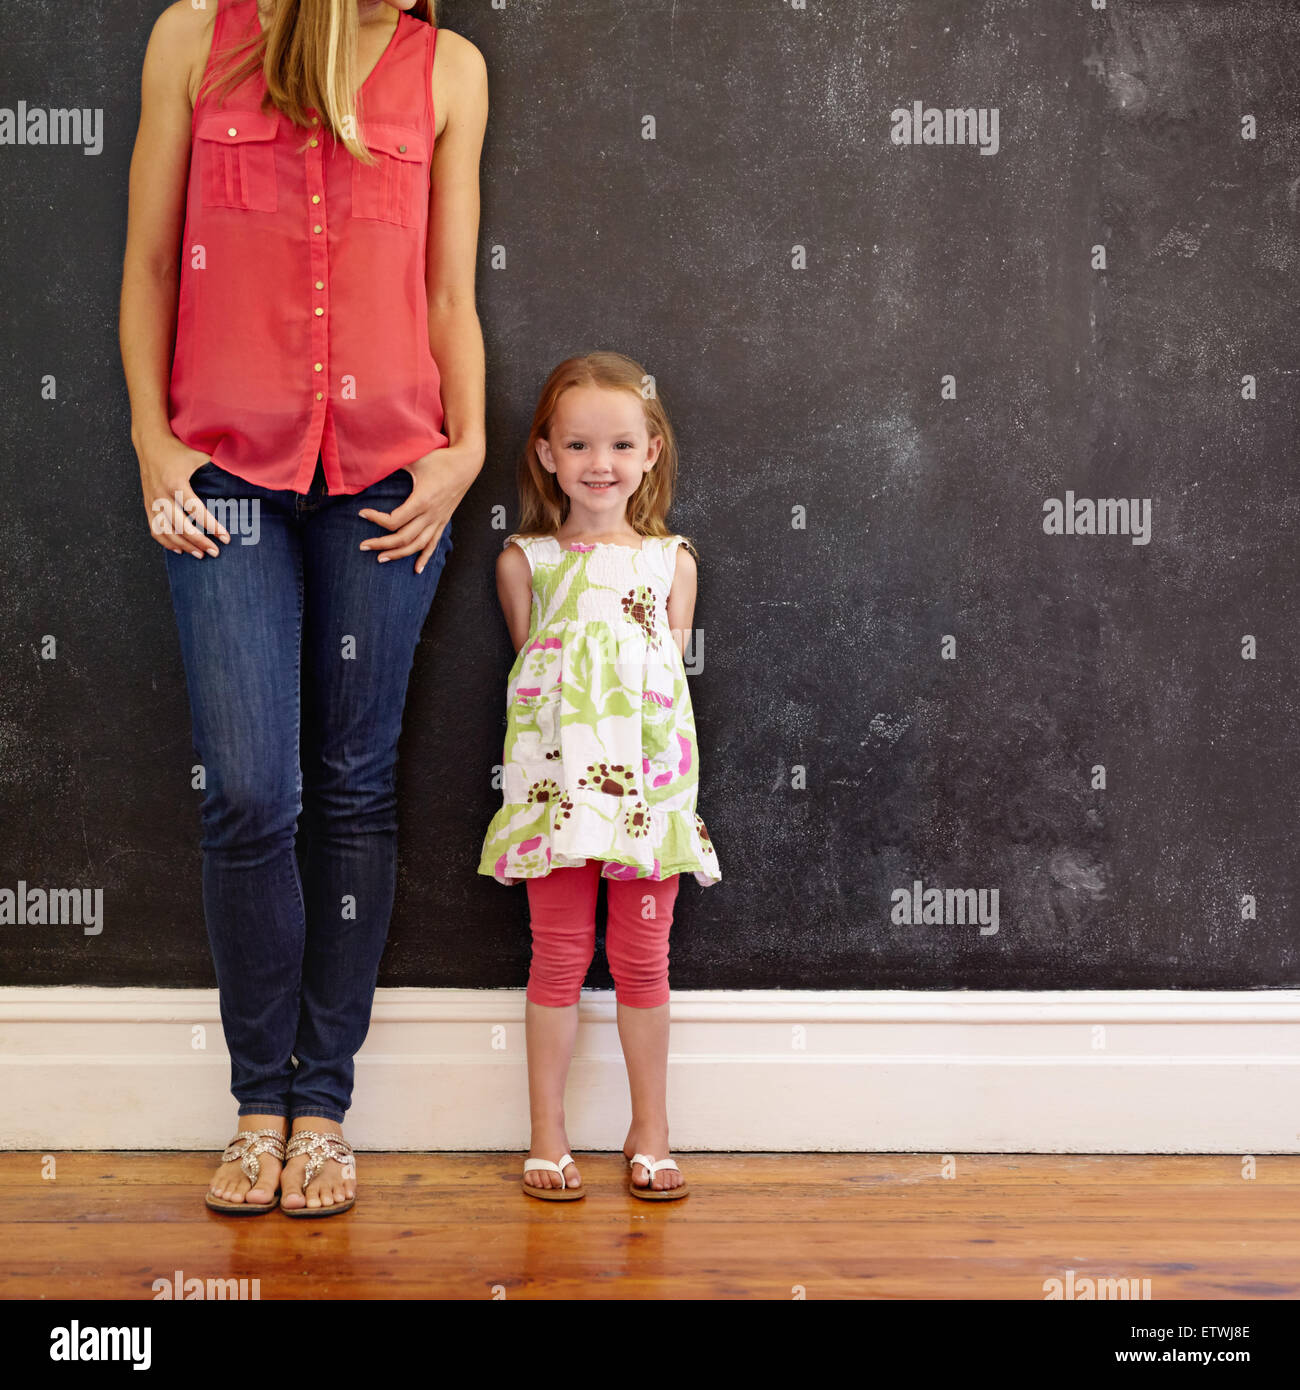 Indoor shot of beautiful little girl standing with her mother smiling. Mother and daughter posing against a black - Stock Image